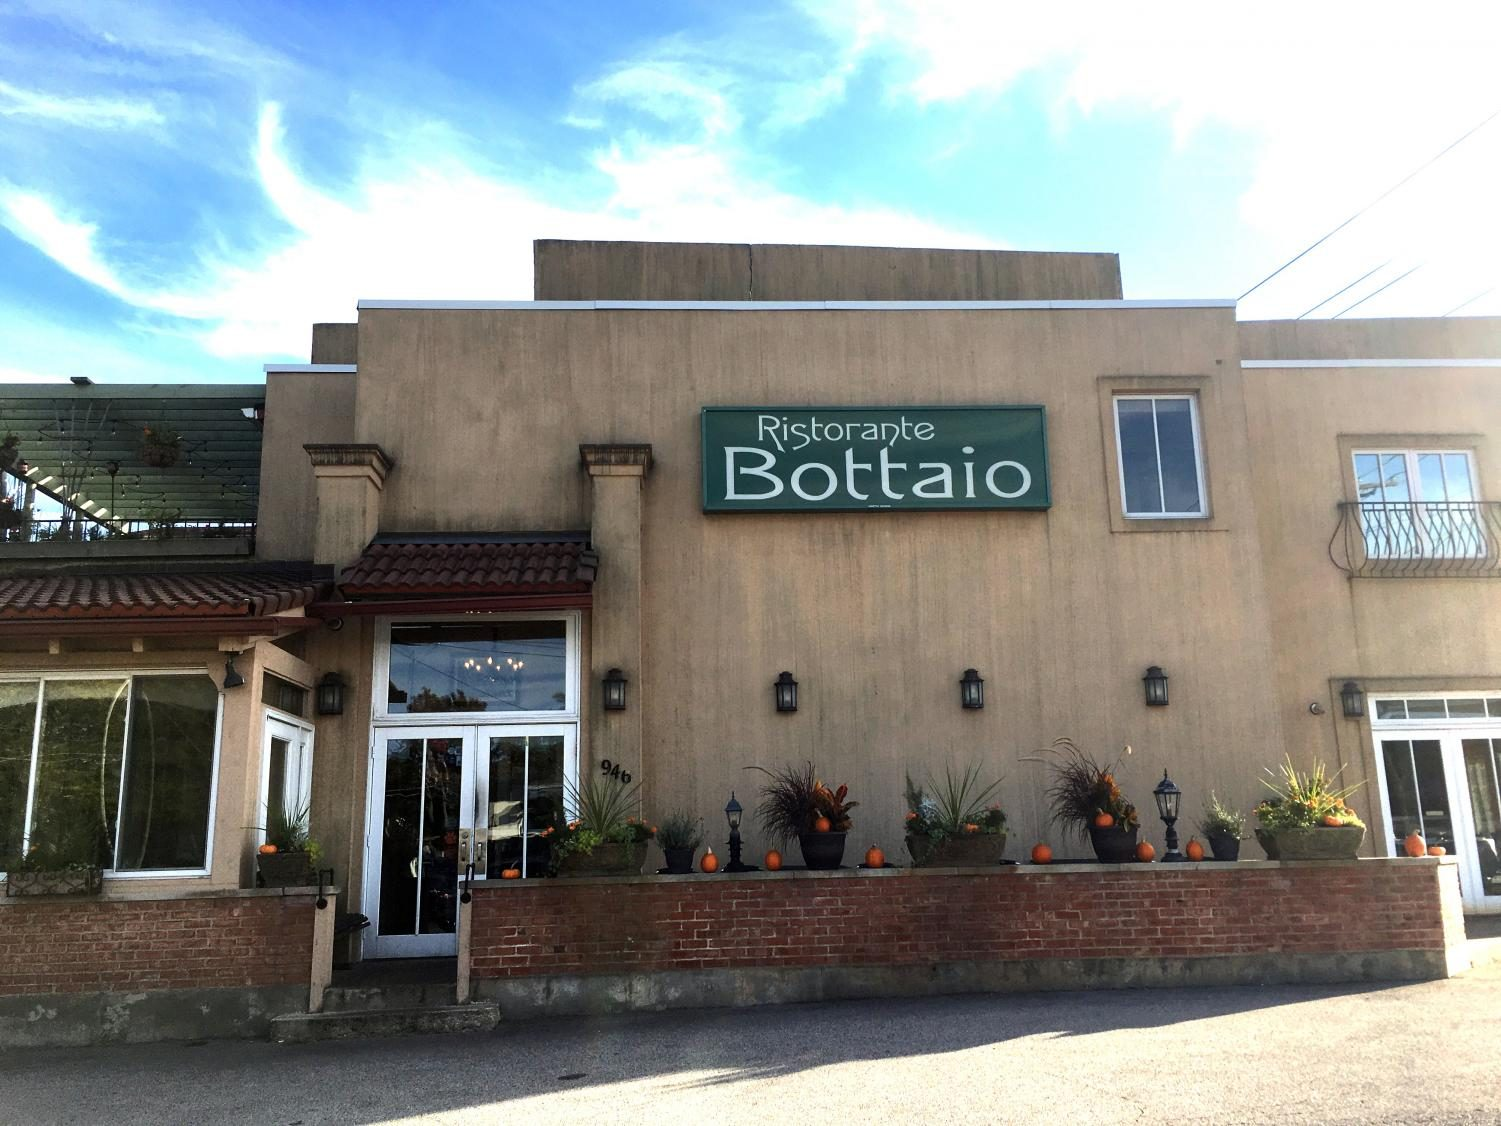 Libertyville's essential restaurant, Bottaio, brings customers delicious food and a great atmosphere.